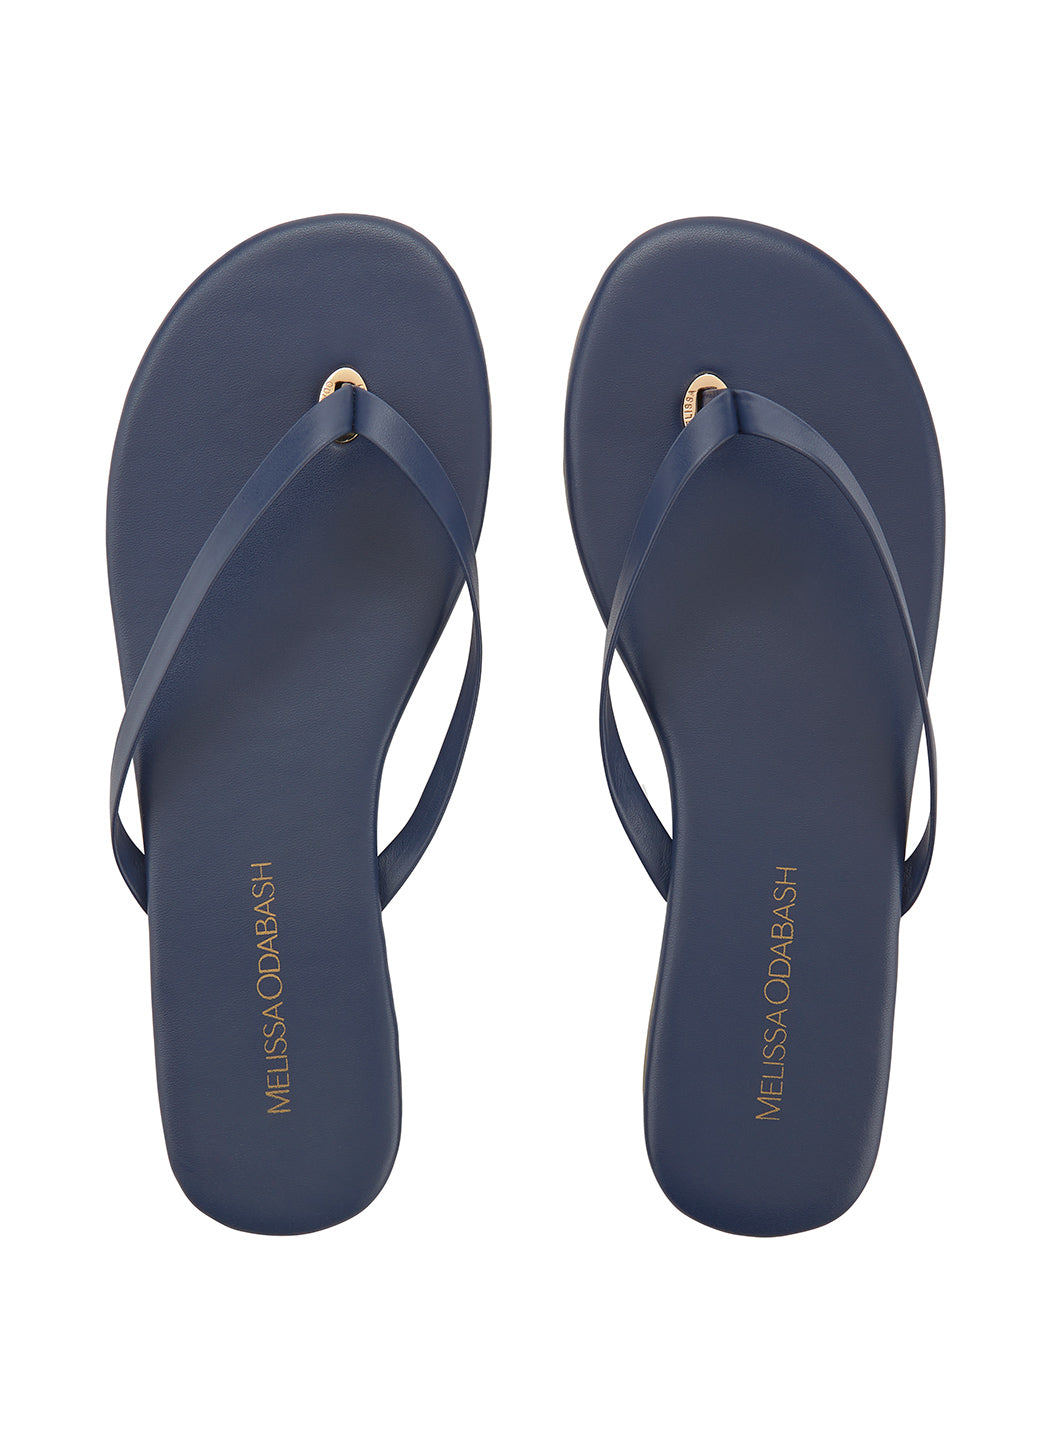 Melissa Odabash Leather Flip Flops Navy - Melissa Odabash Accessories